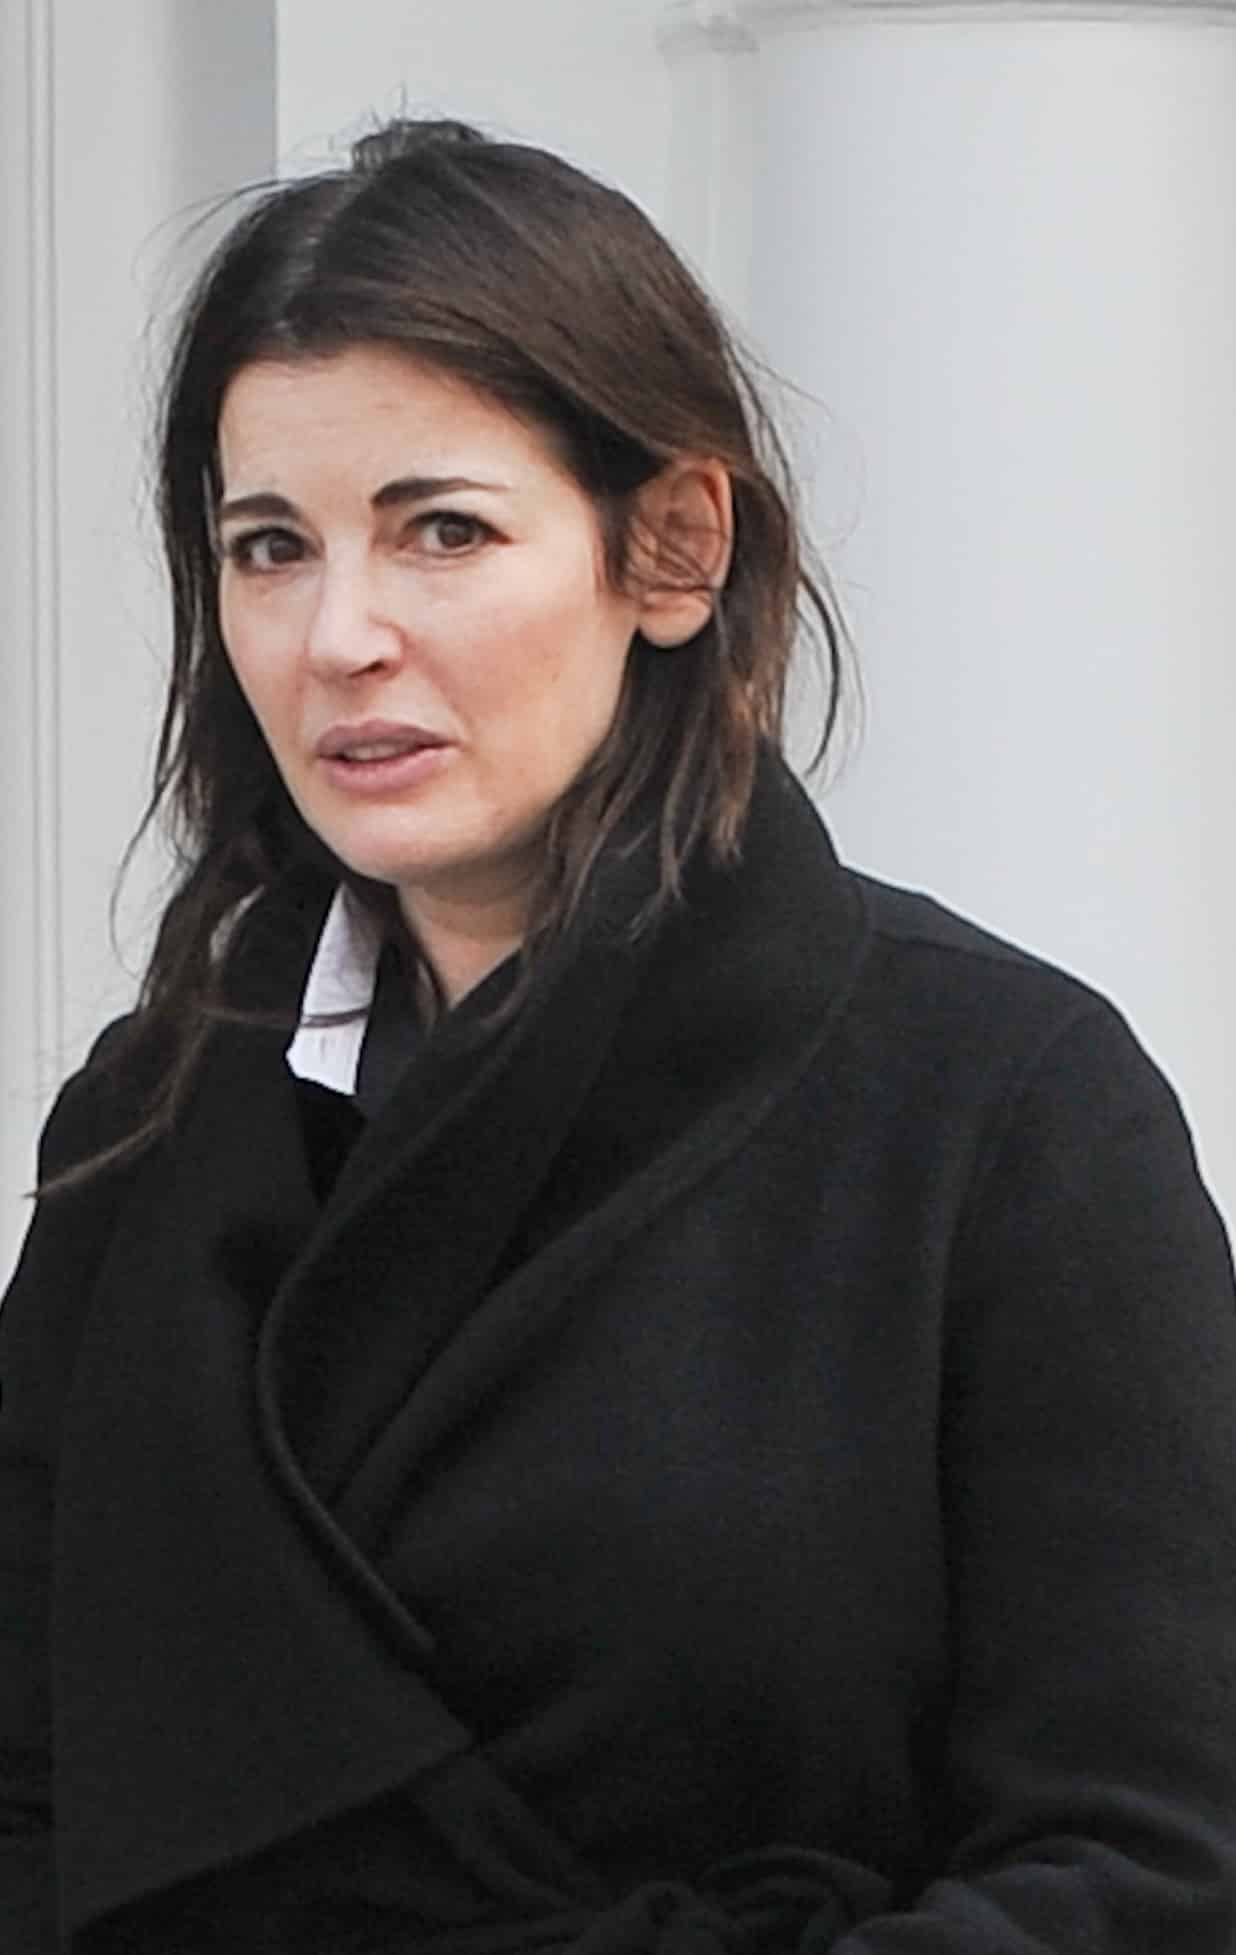 Nigella Lawson seen at the family home